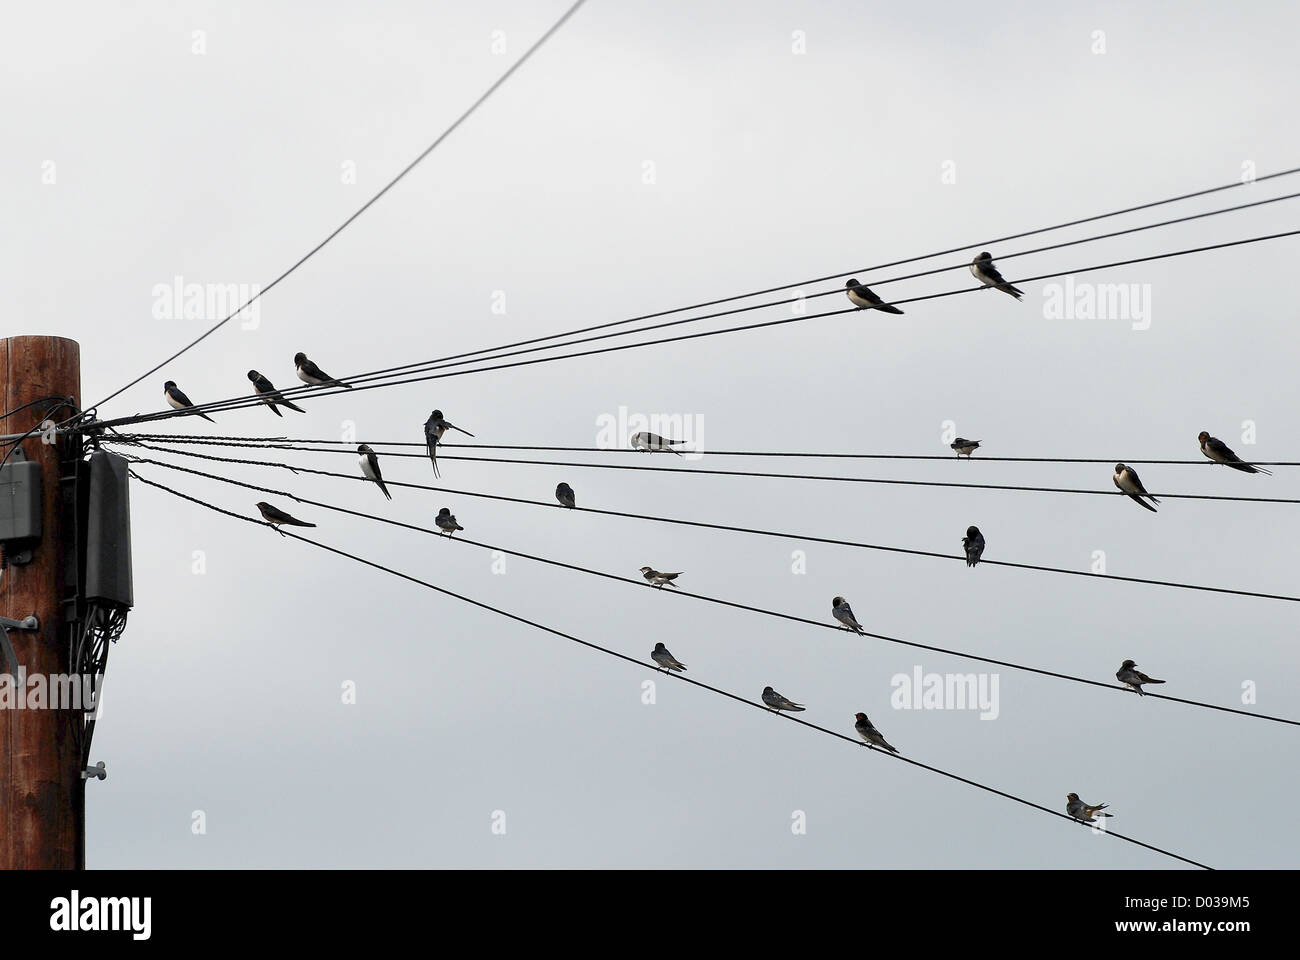 Telegraph Pole Wires Bird Stock Photos & Telegraph Pole Wires Bird ...